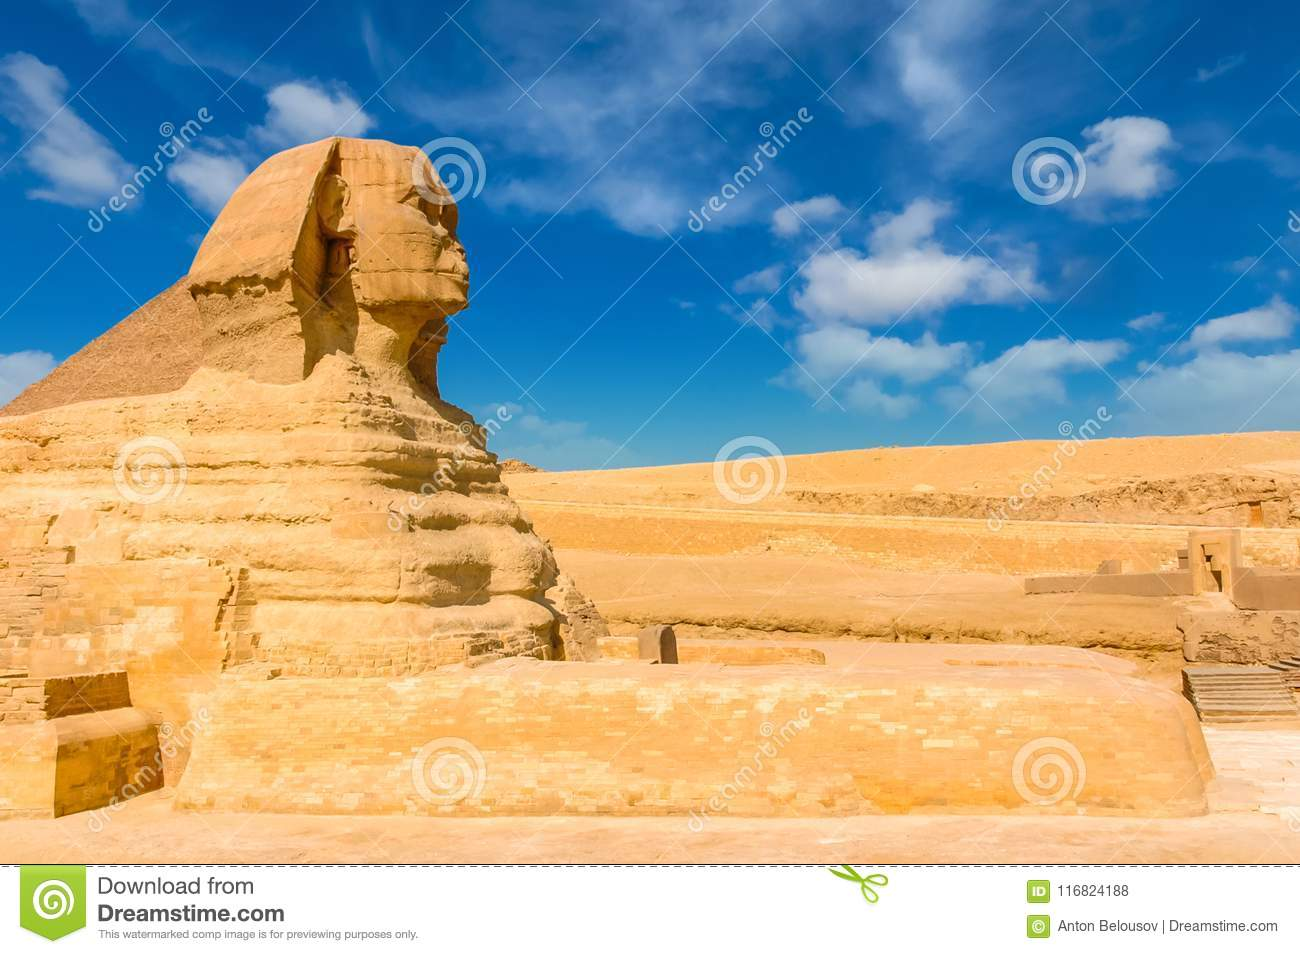 Egyptian sphinx. Cairo. Giza. Egypt. Travel background. Architectural monument. The tombs of the pharaohs. Vacation holidays back